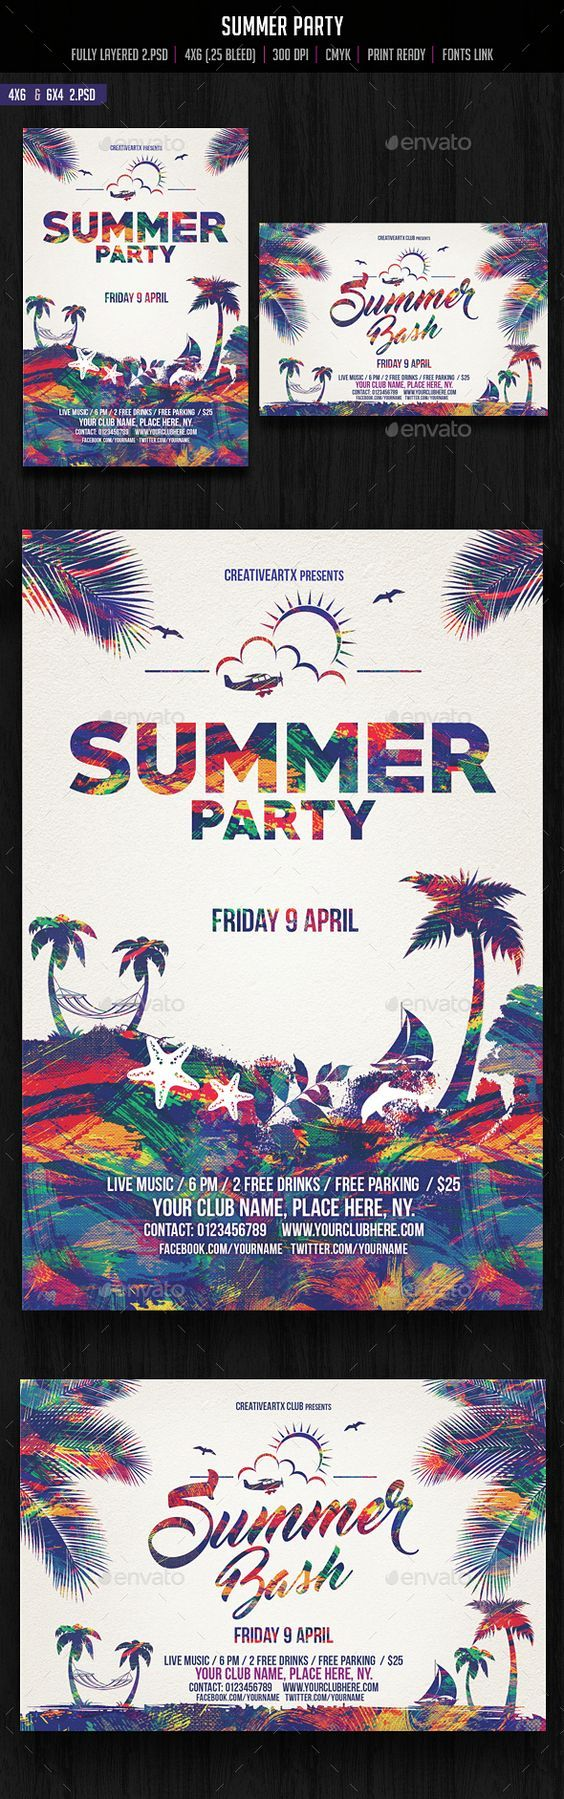 Summer Party Flyer Template PSD. Download here: http://graphicriver.net/item/summer-party-flyer/15140036?ref=ksioks: